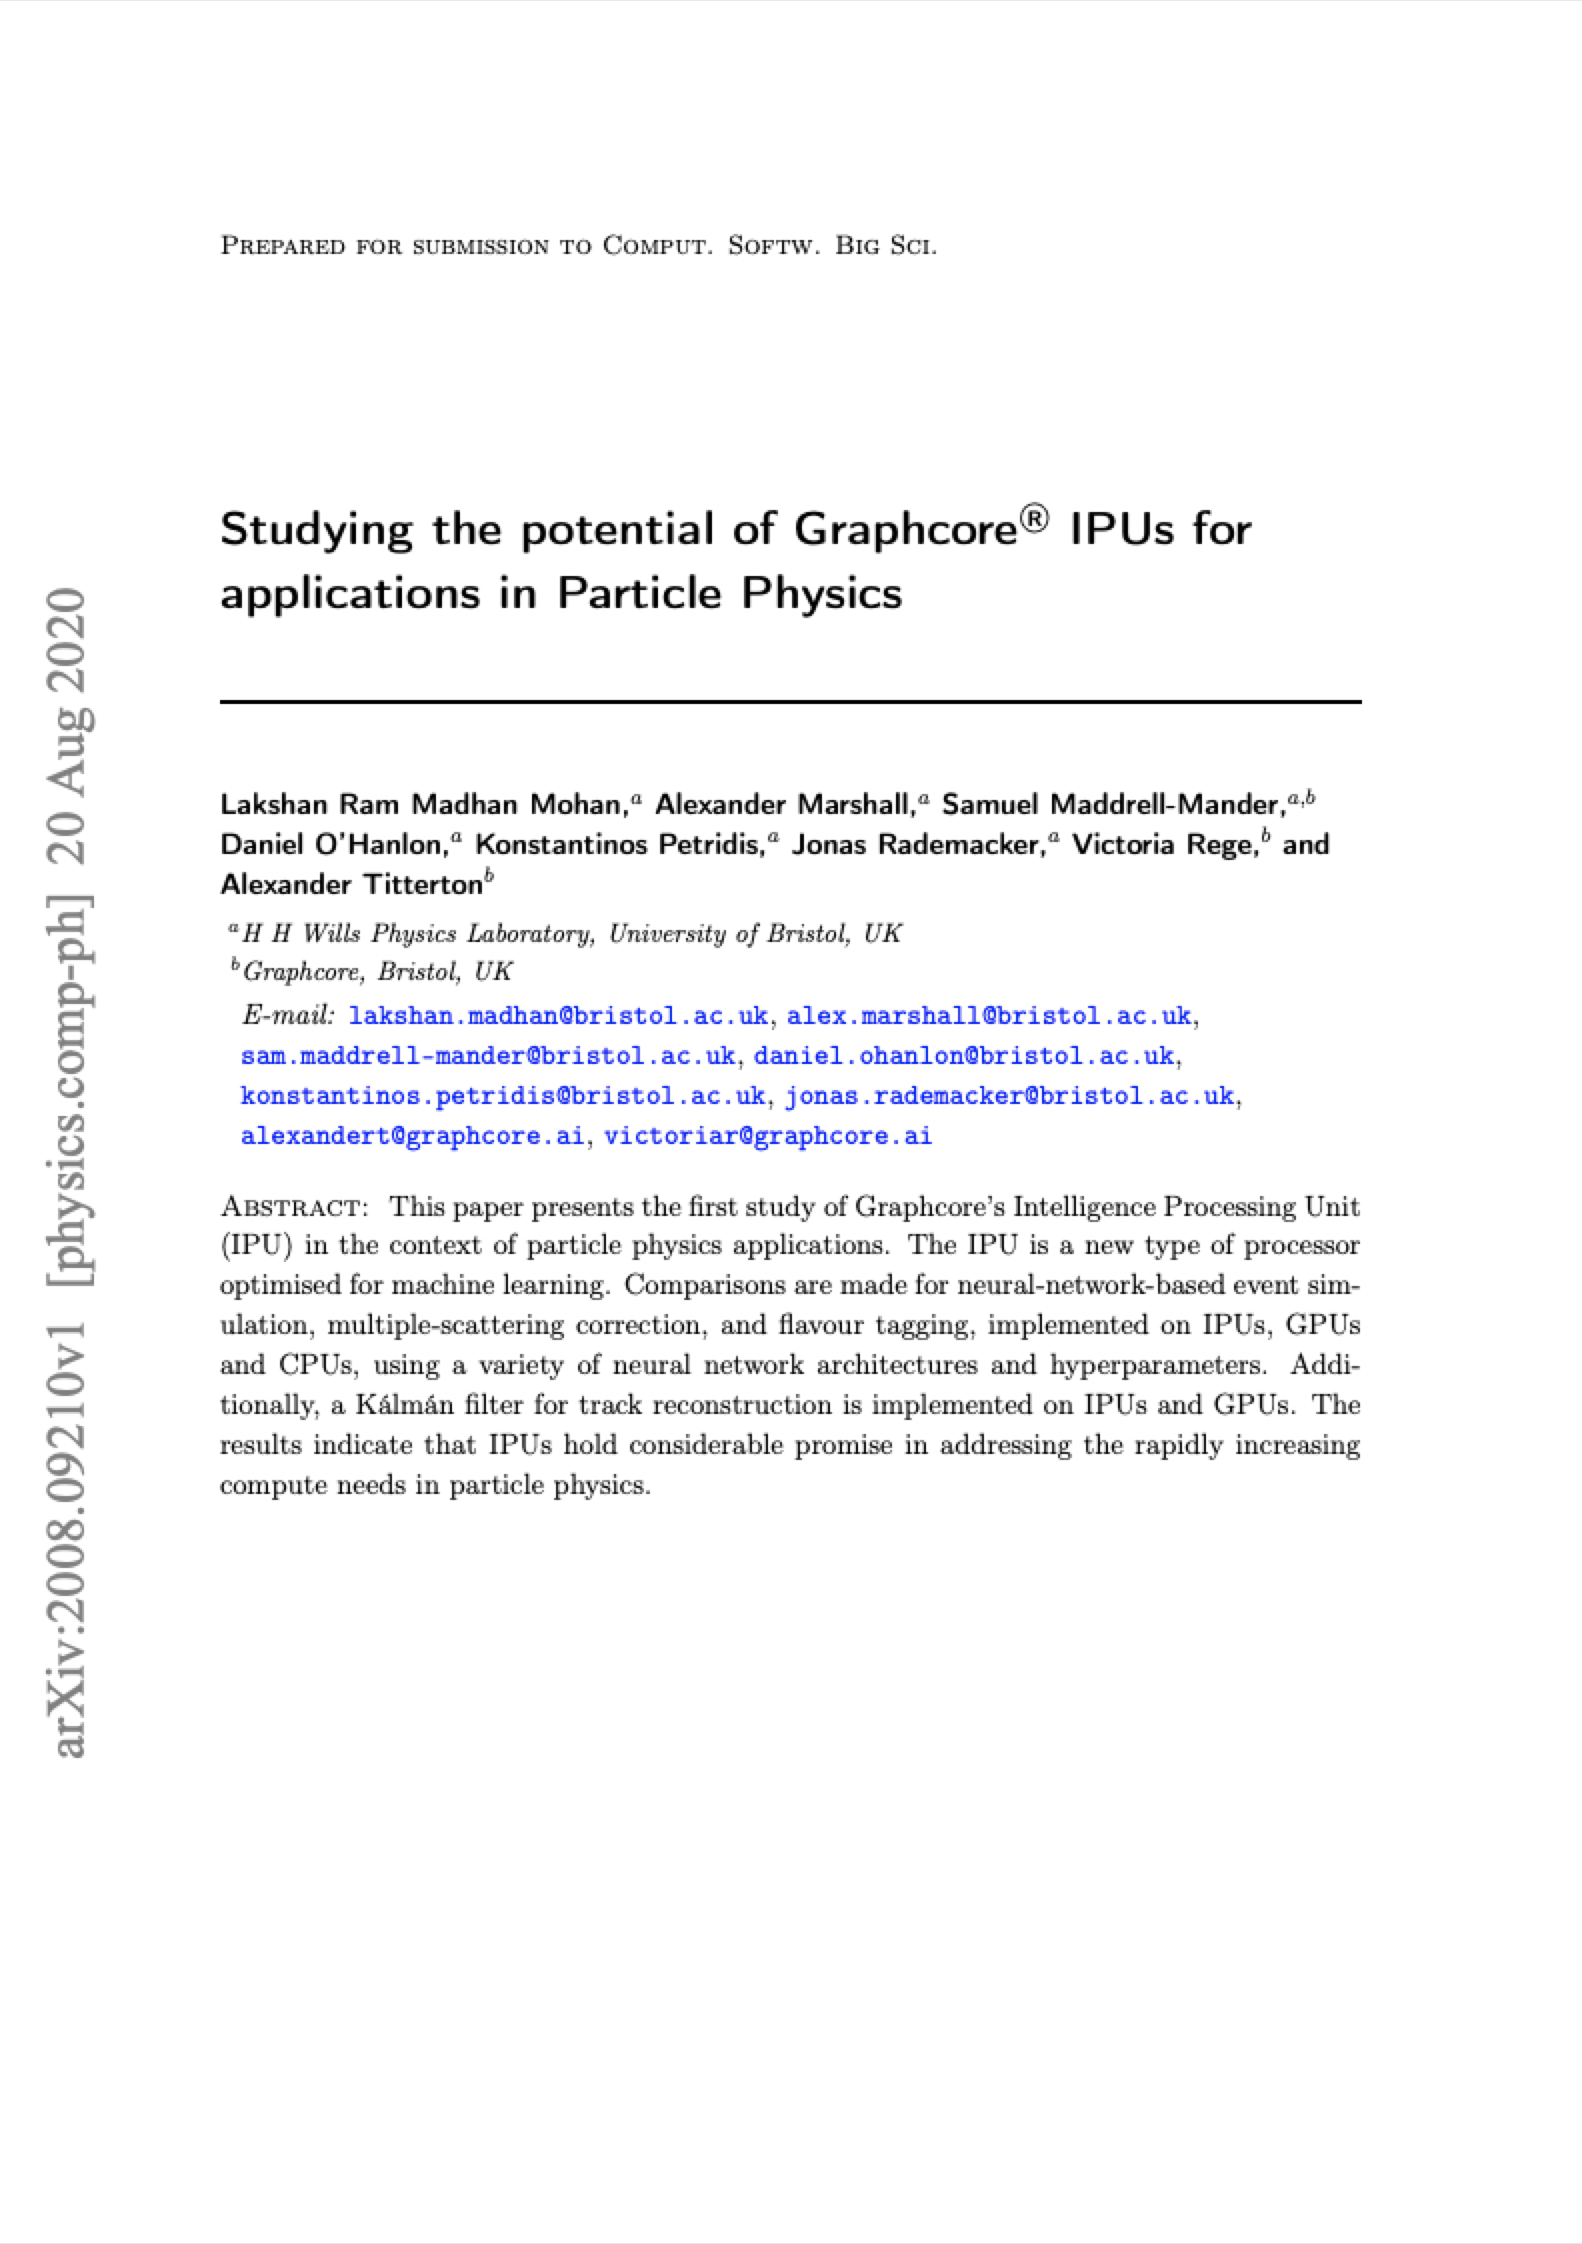 University of Bristol: Studying the potential of Graphcore IPUs for applications in Particle Physics